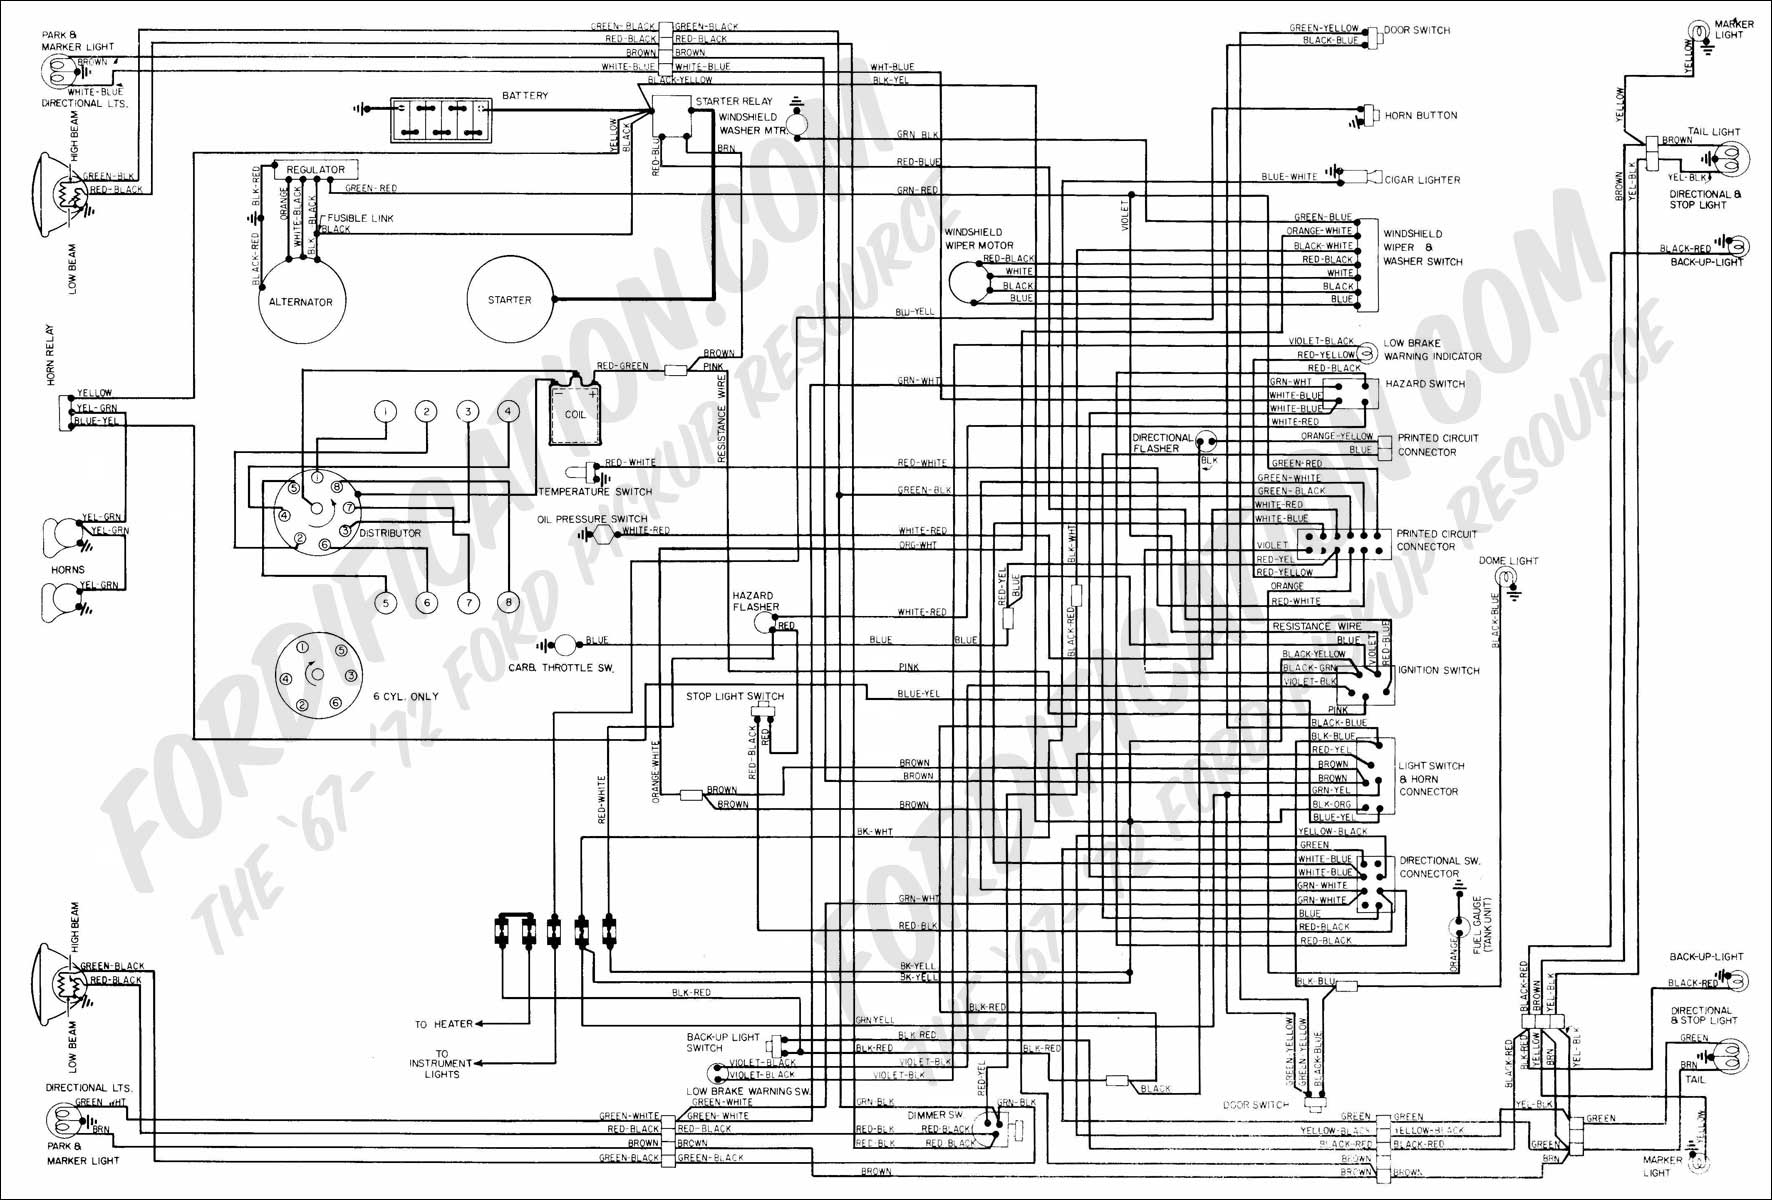 wiring diagram 72_quick 2003 ford f350 wiring diagram 2013 ford f350 wiring diagram \u2022 free 2000 ford f150 wiring schematic at n-0.co